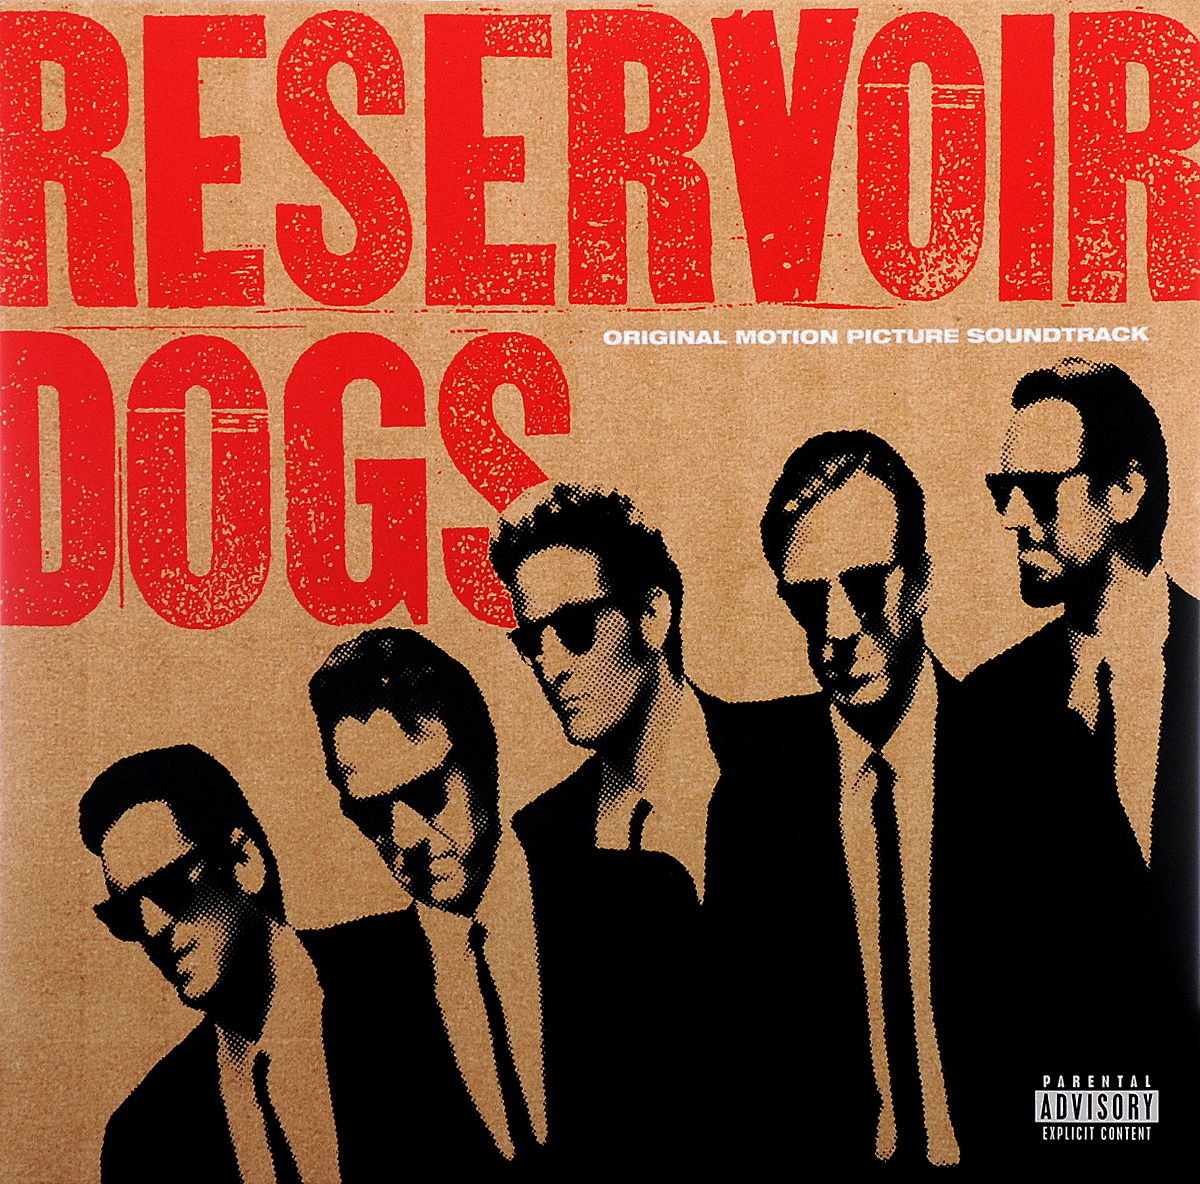 Reservoir Dogs. Original Motion Picture Soundtrack (LP) django unchained original motion picture soundtrack 2 lp